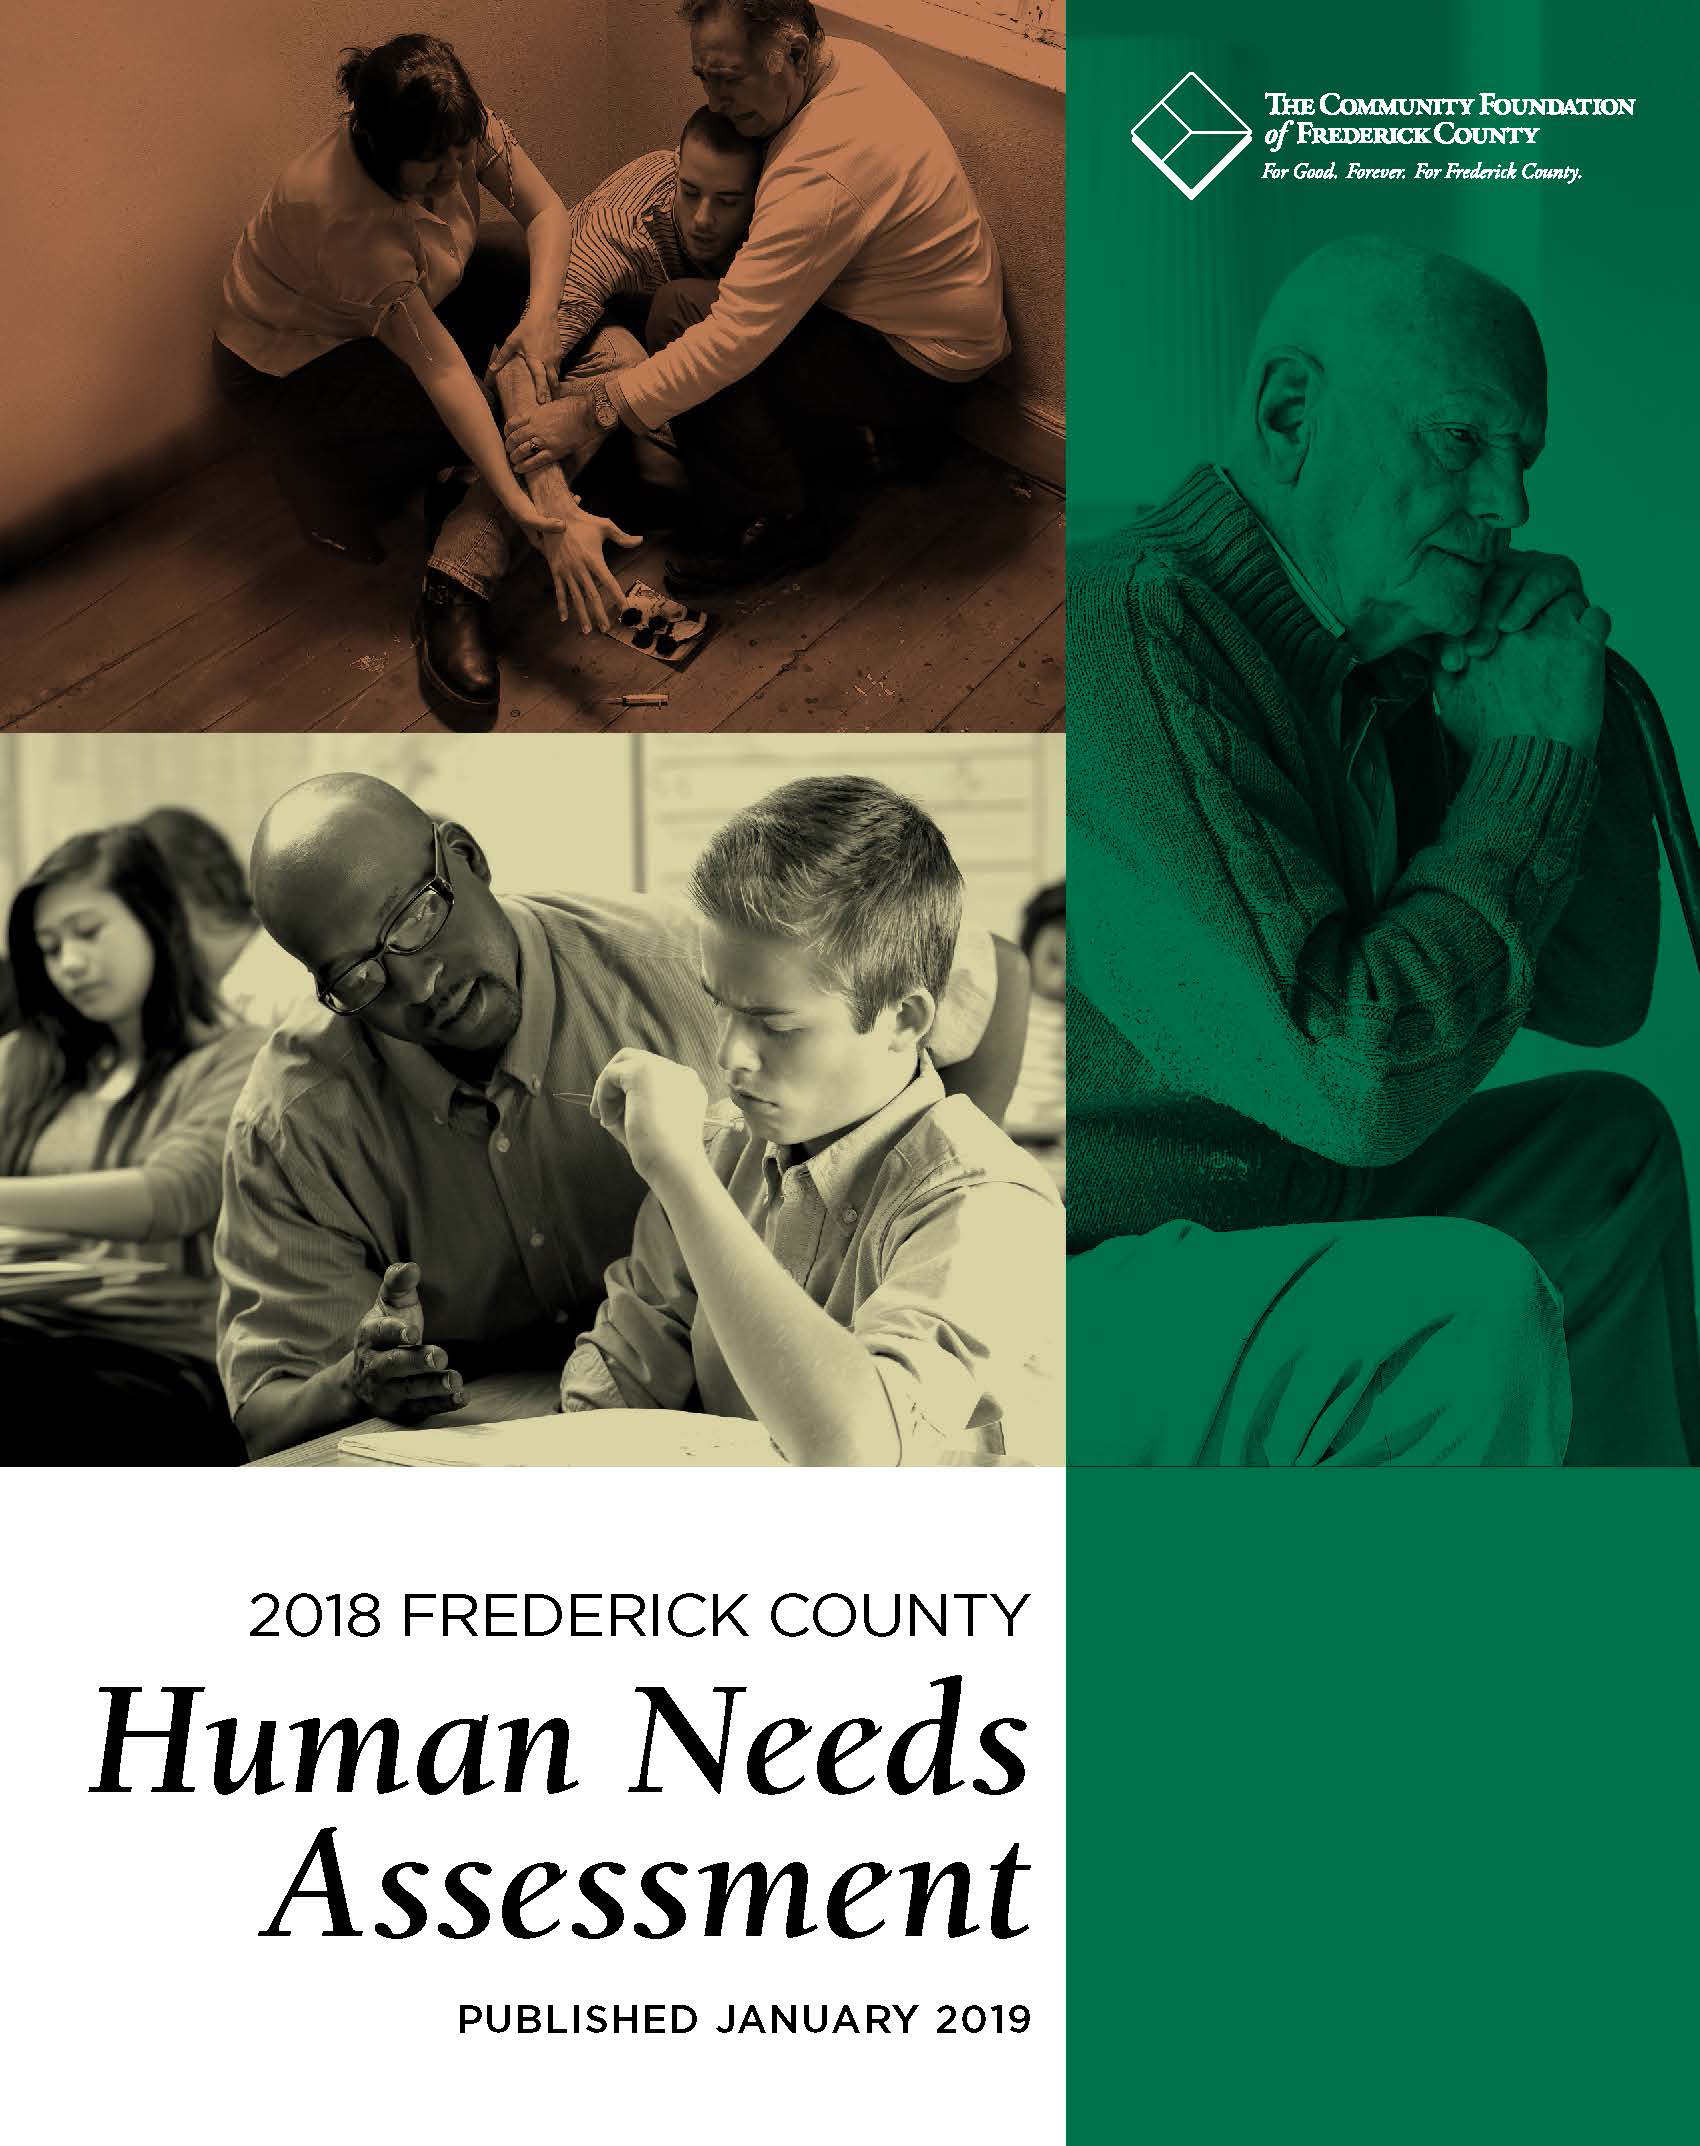 Assessing Human Needs in Frederick County